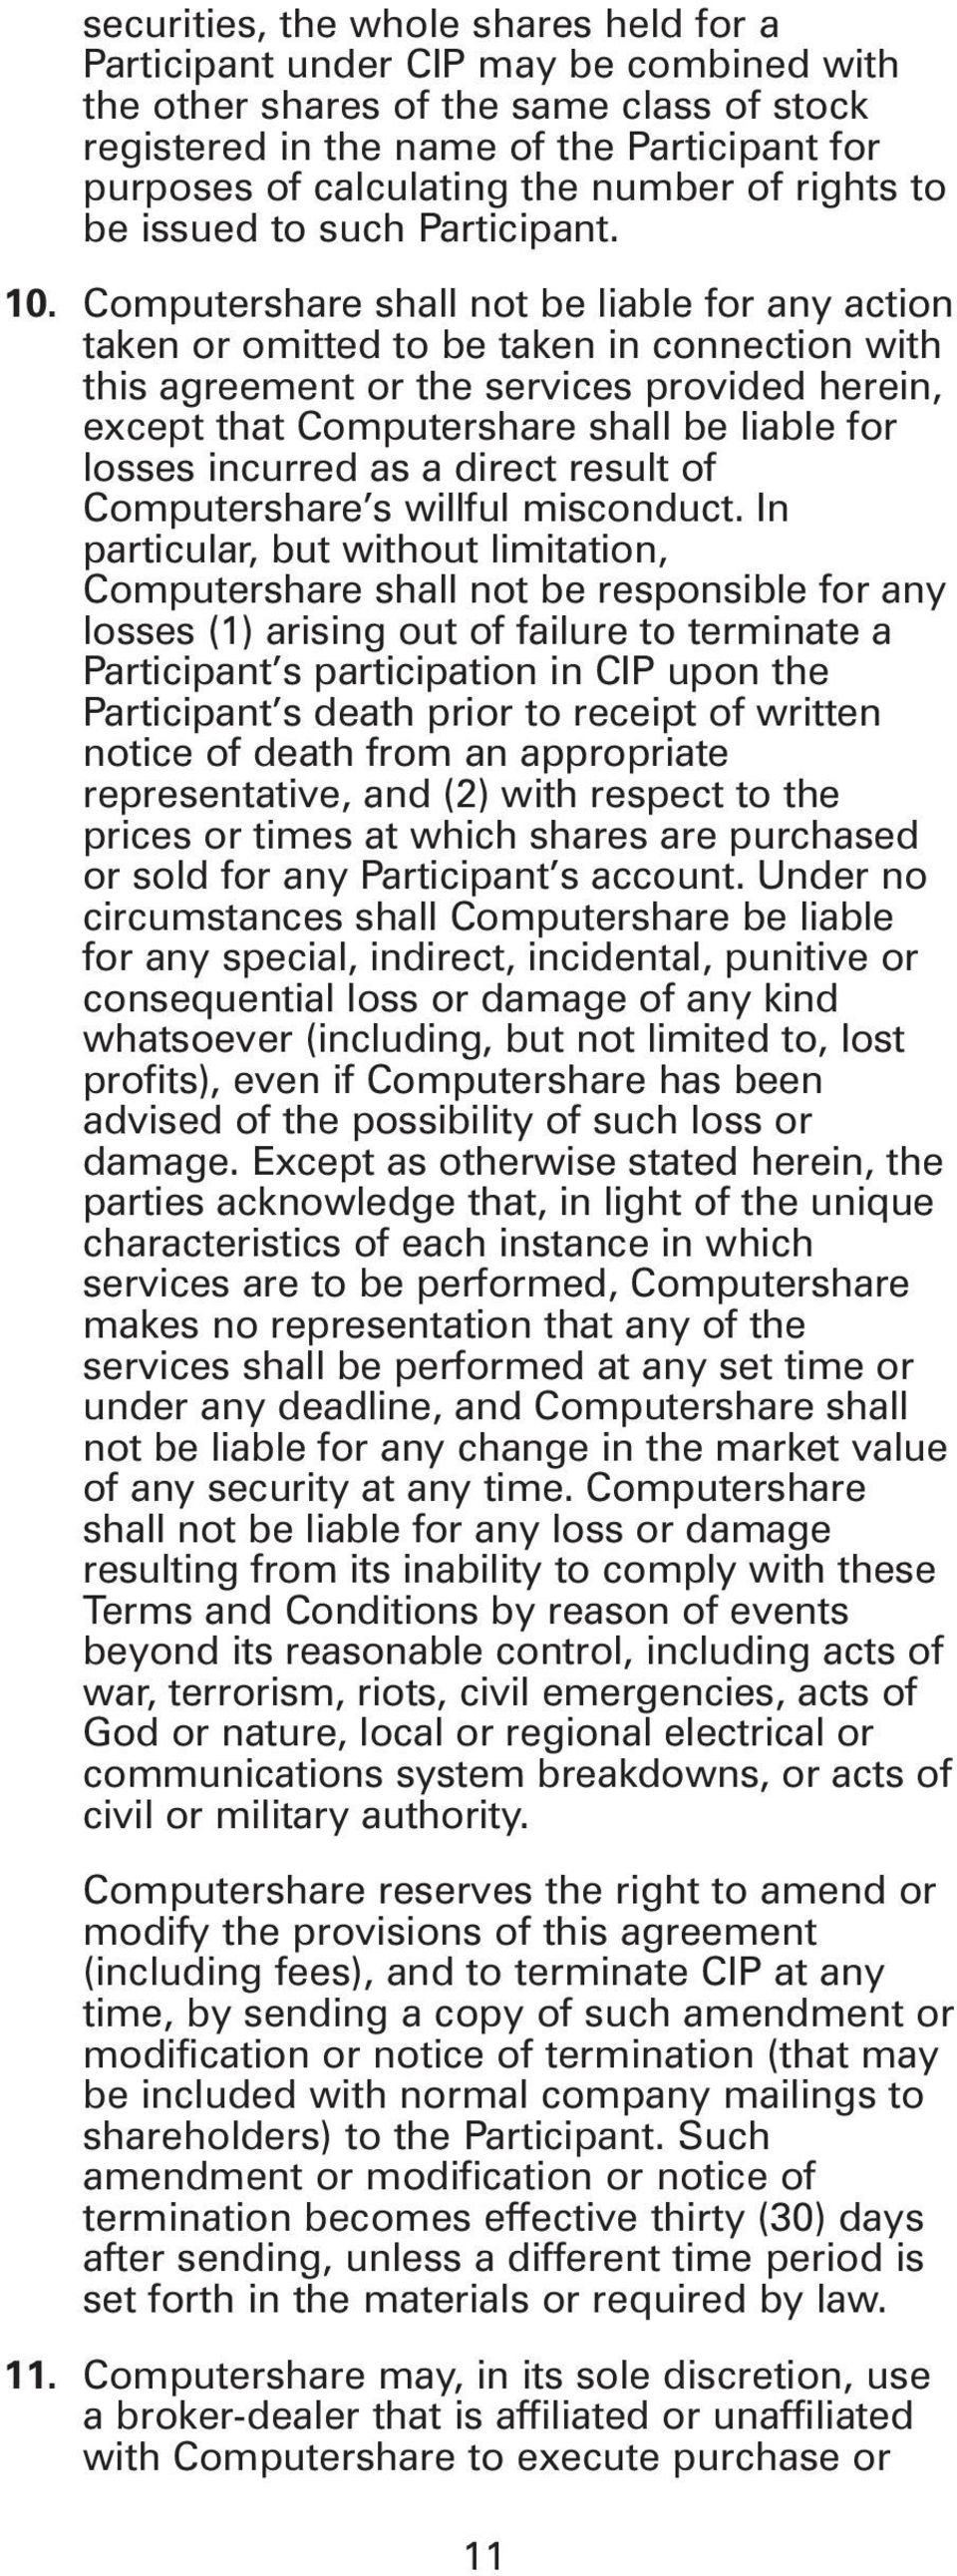 Computershare shall not be liable for any action taken or omitted to be taken in connection with this agreement or the services provided herein, except that Computershare shall be liable for losses